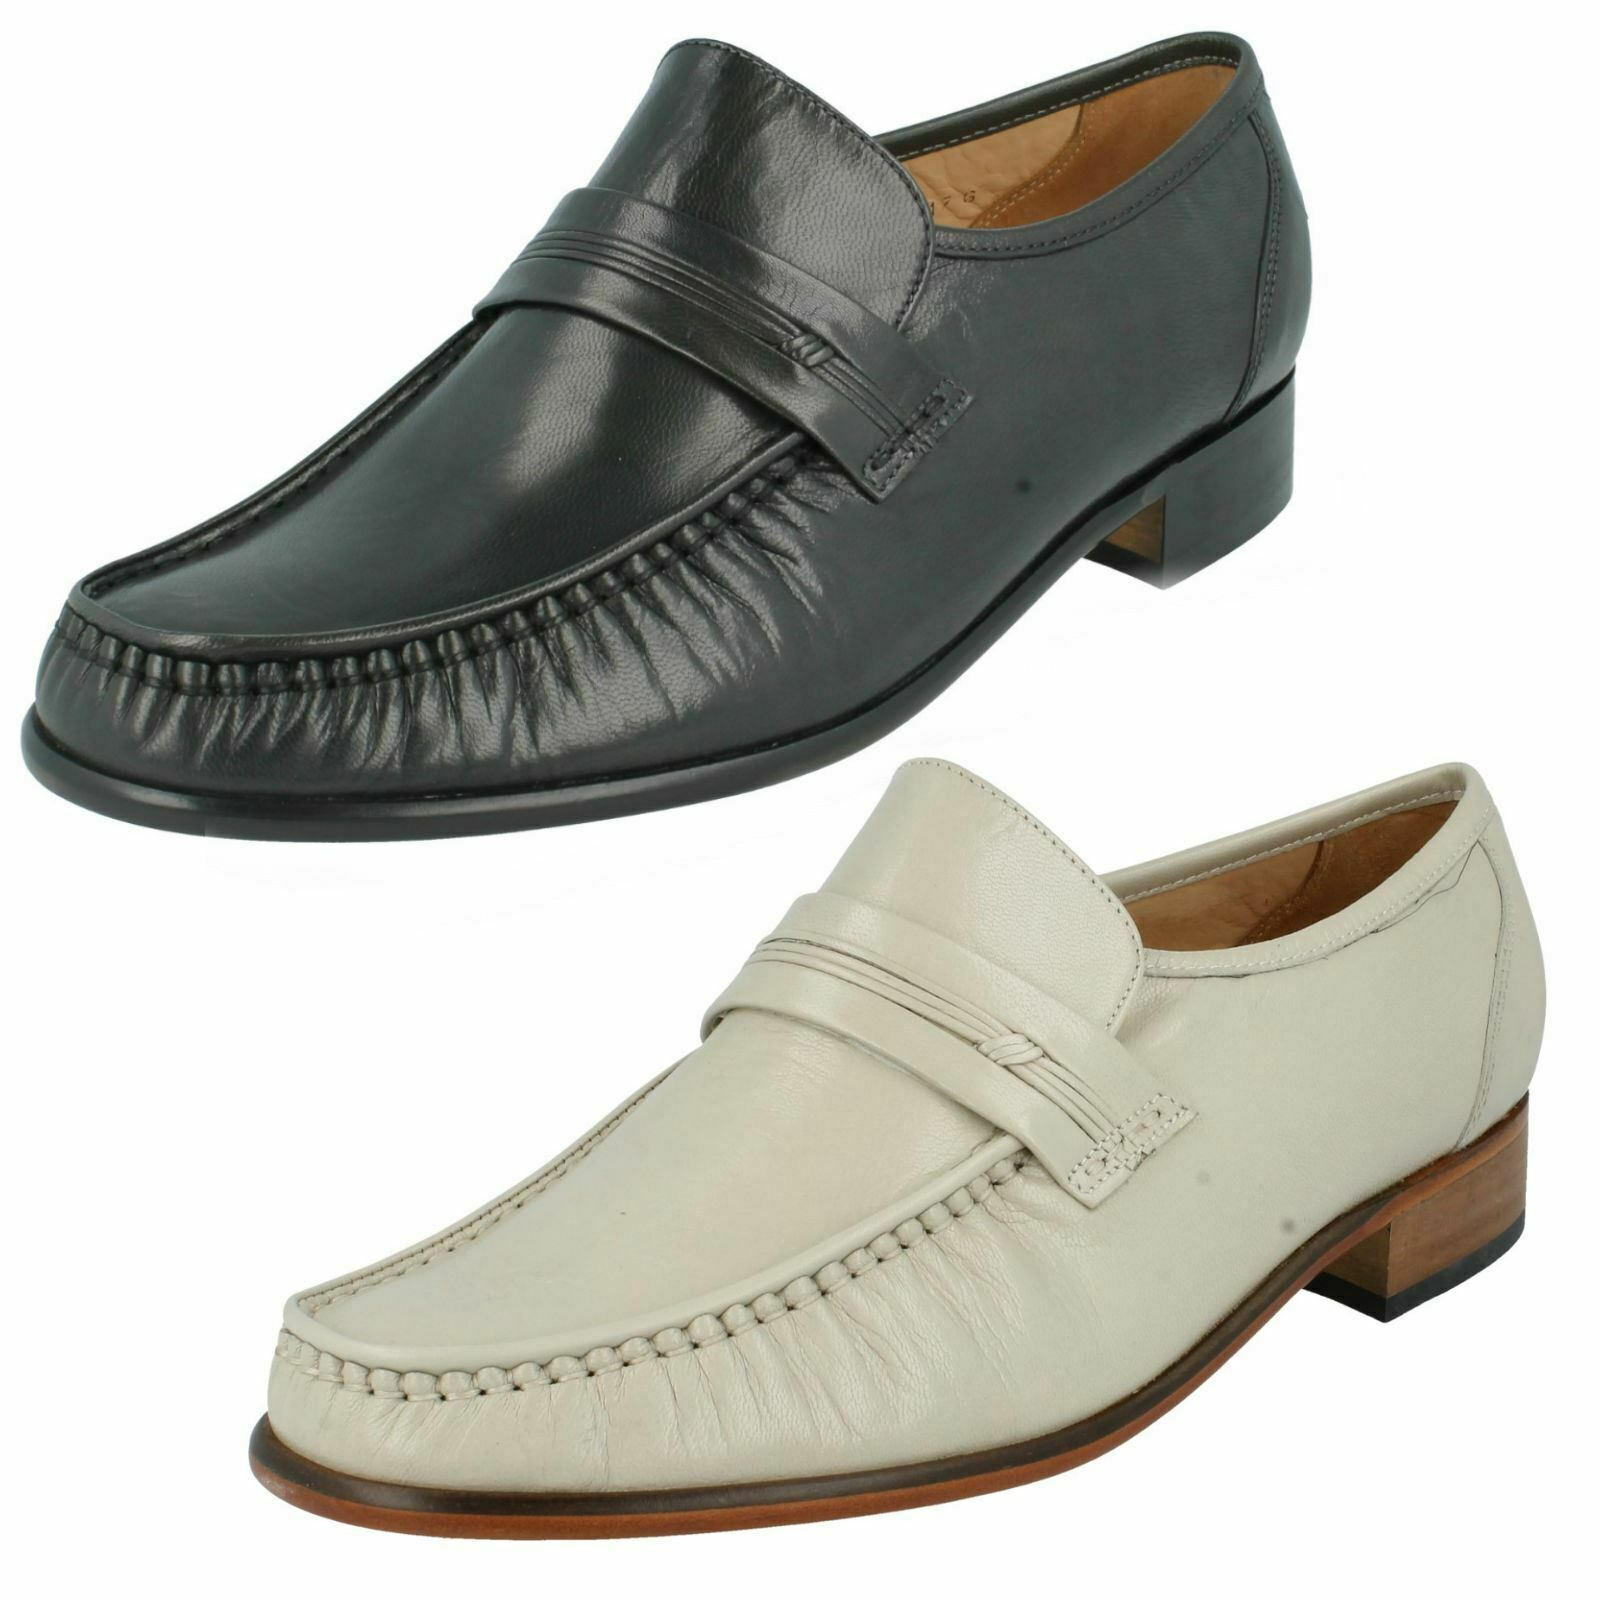 Grenson pour Homme Moccasin chaussures Greclapham